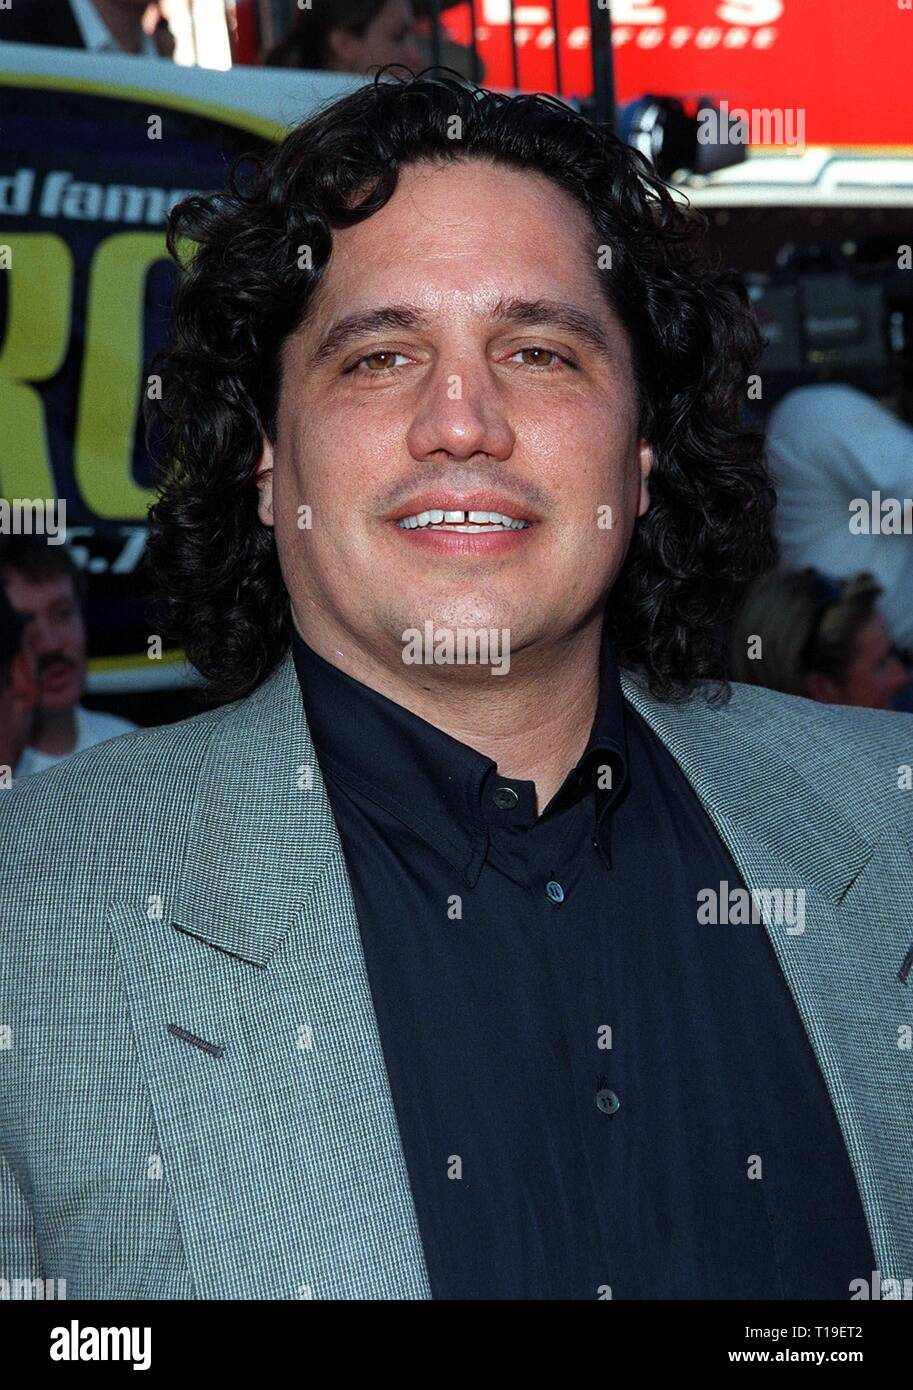 LOS ANGELES, CA - September 8, 2011:  Director ROB BOWMAN at the world premiere, in Los Angeles, of his new movie 'The X-Files.' - Stock Image